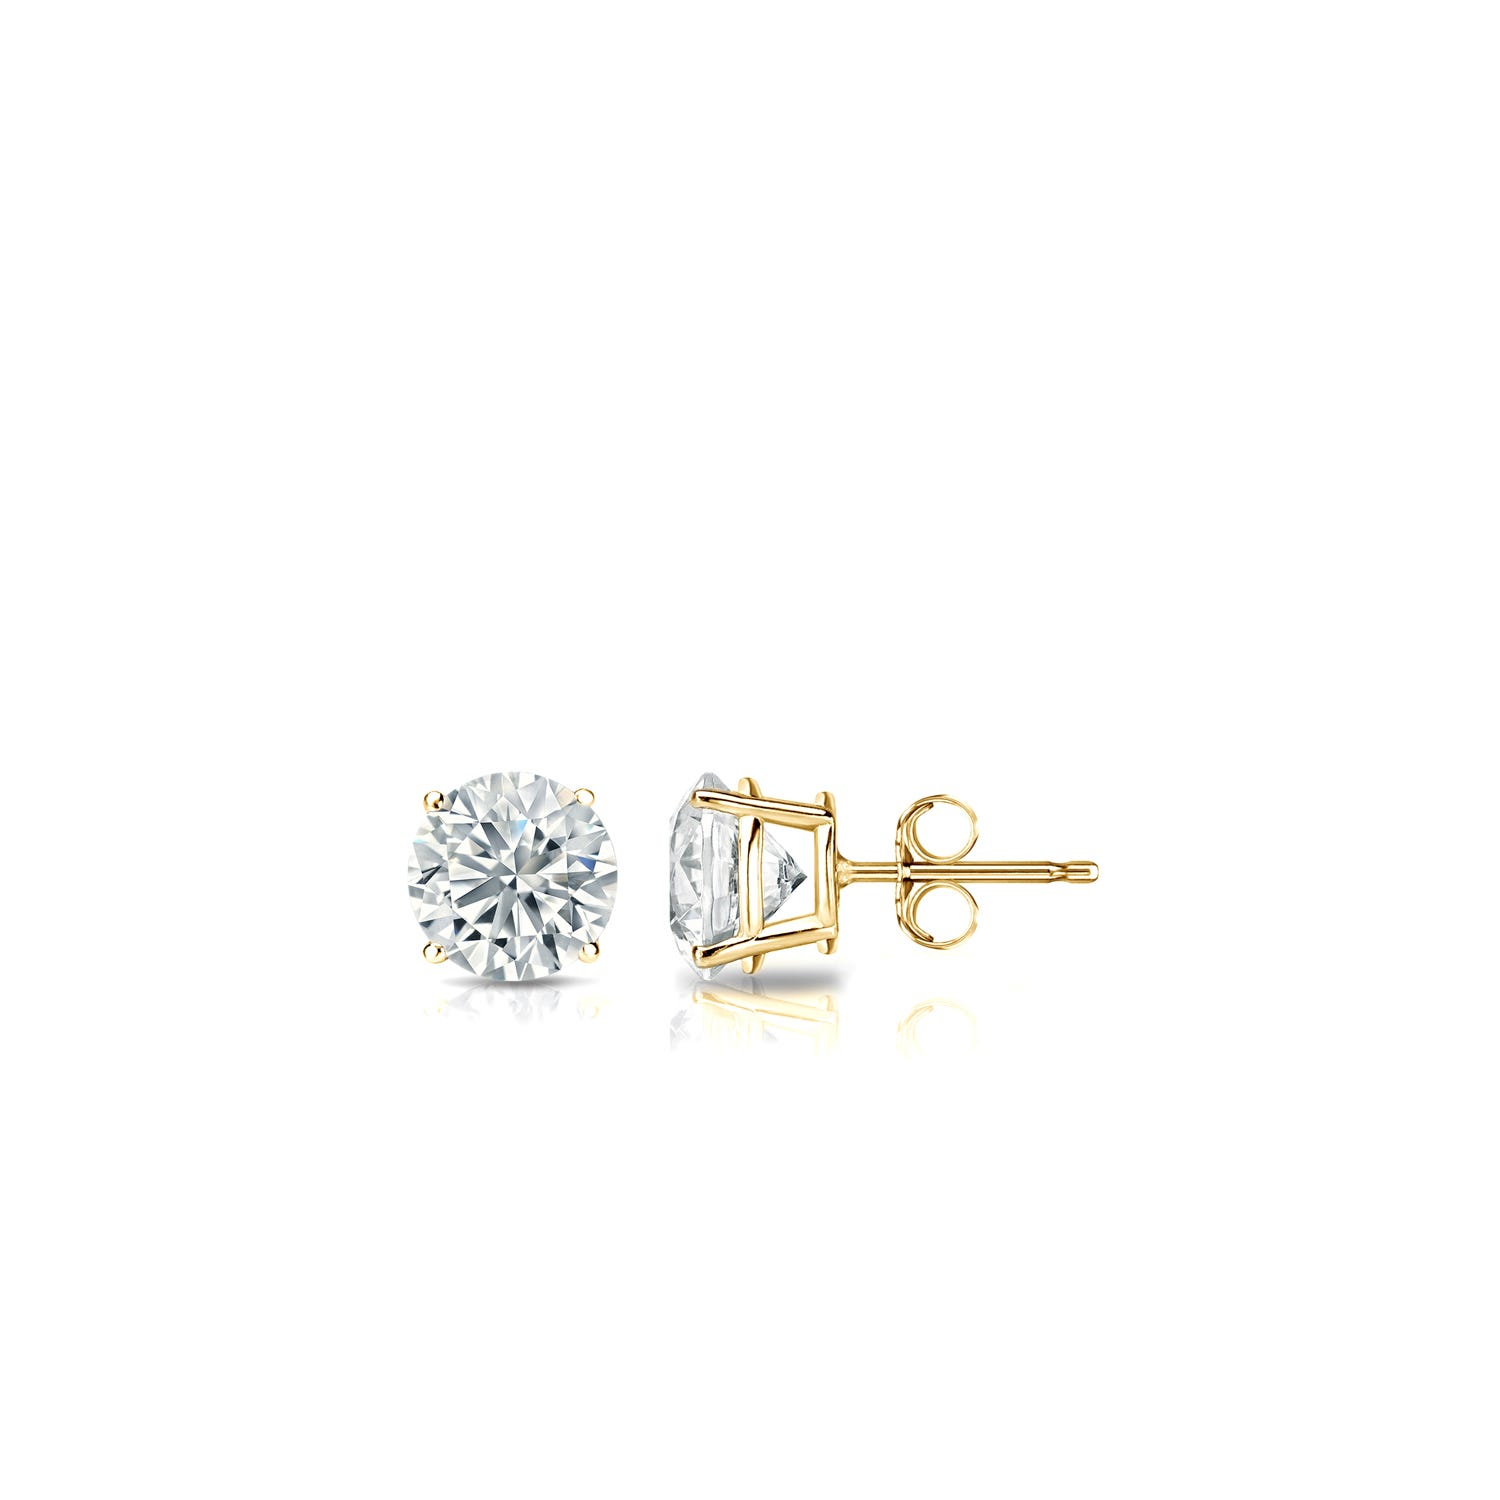 Diamond 1/10ctw. Round Solitaire Stud Earrings (I-J, I1) 18k Yellow Gold